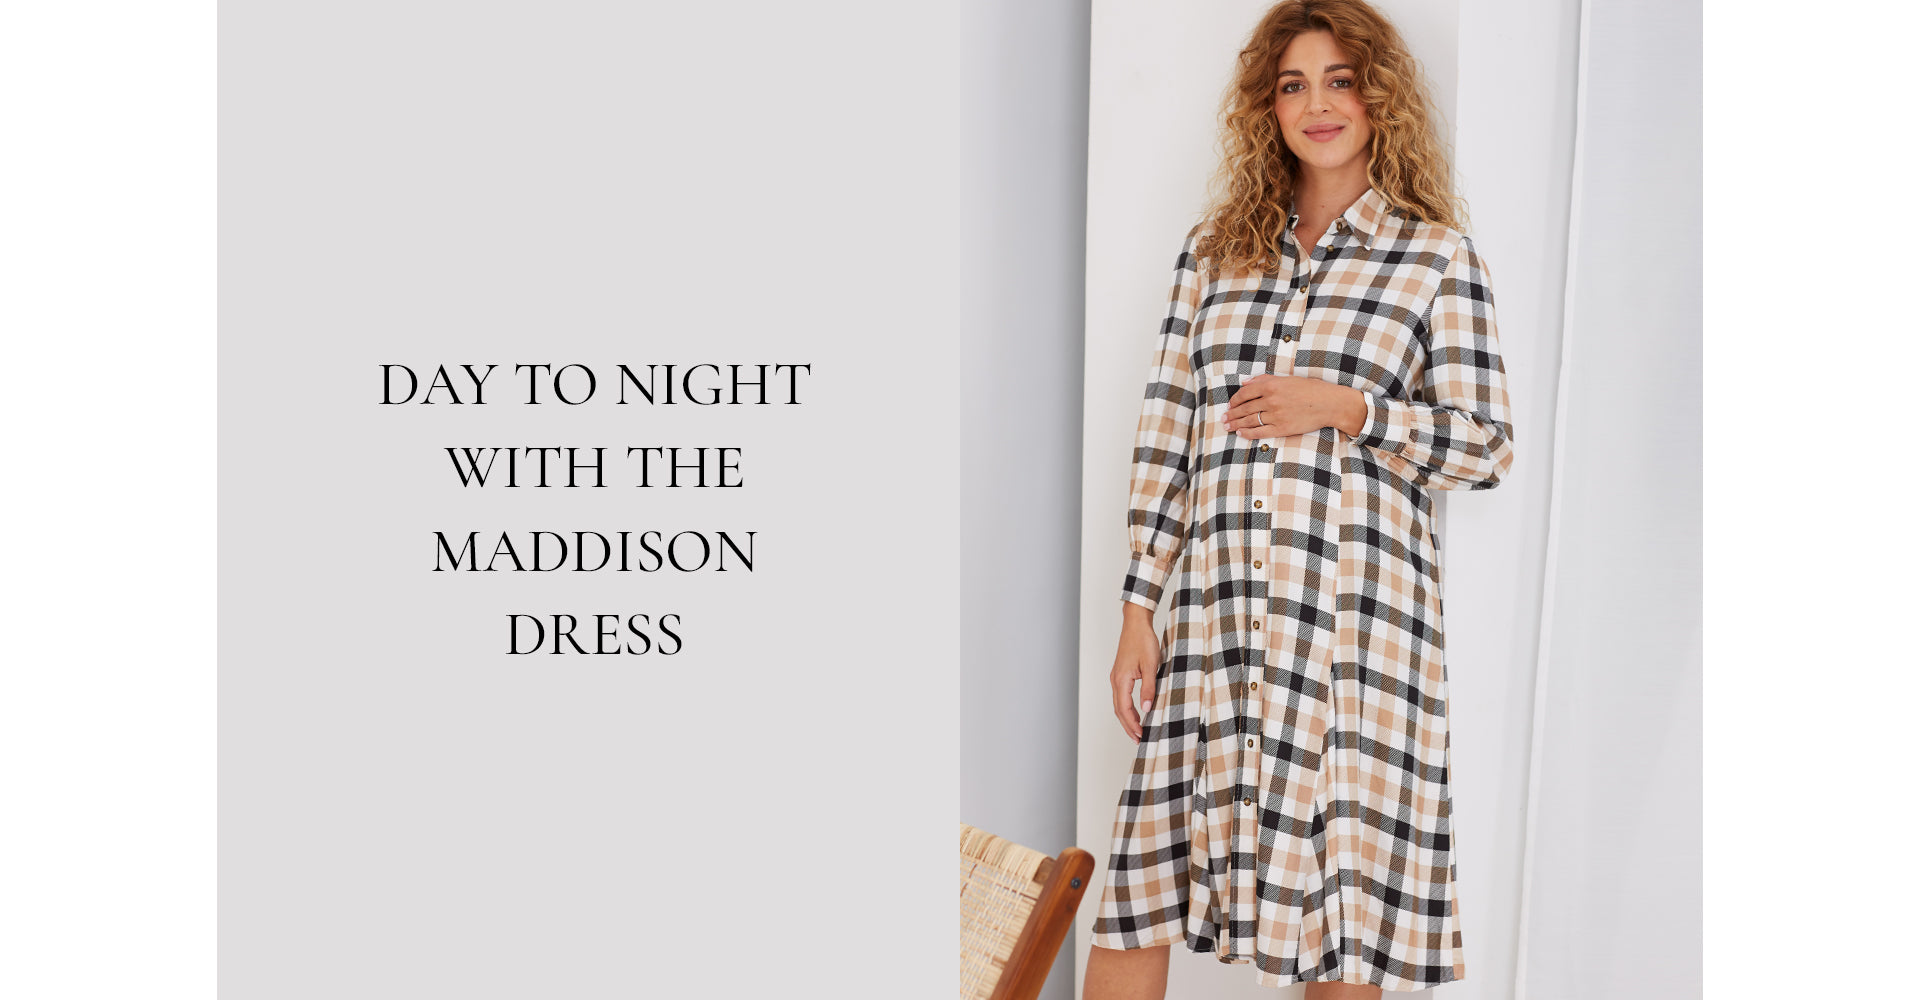 Day to night with the Maddison Dress